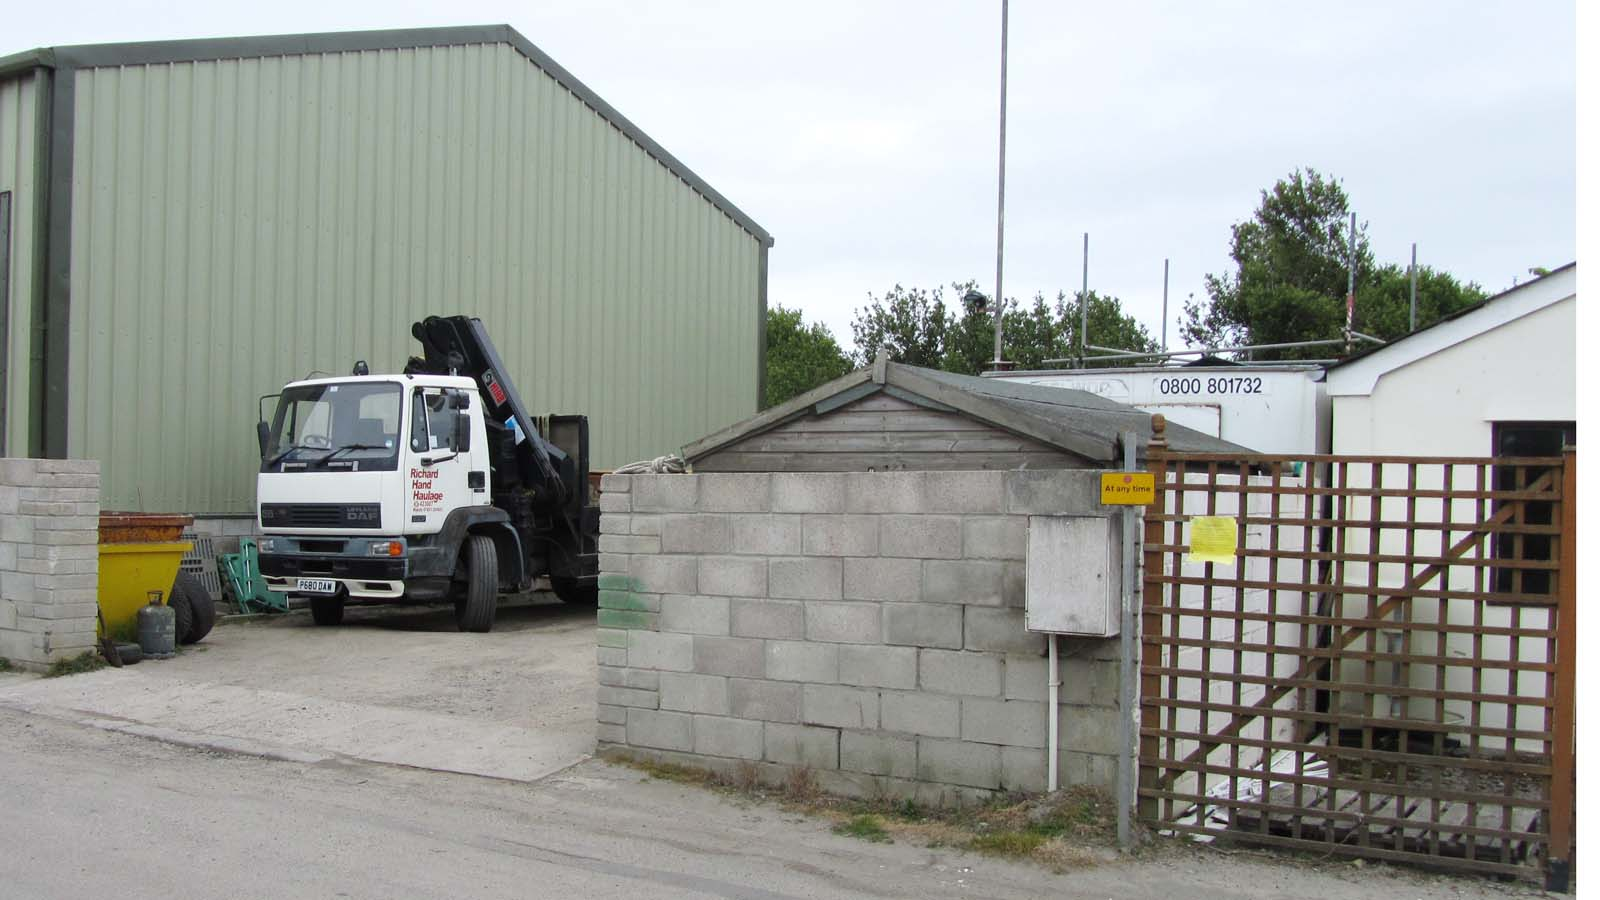 Haulage Business To Expand Premises